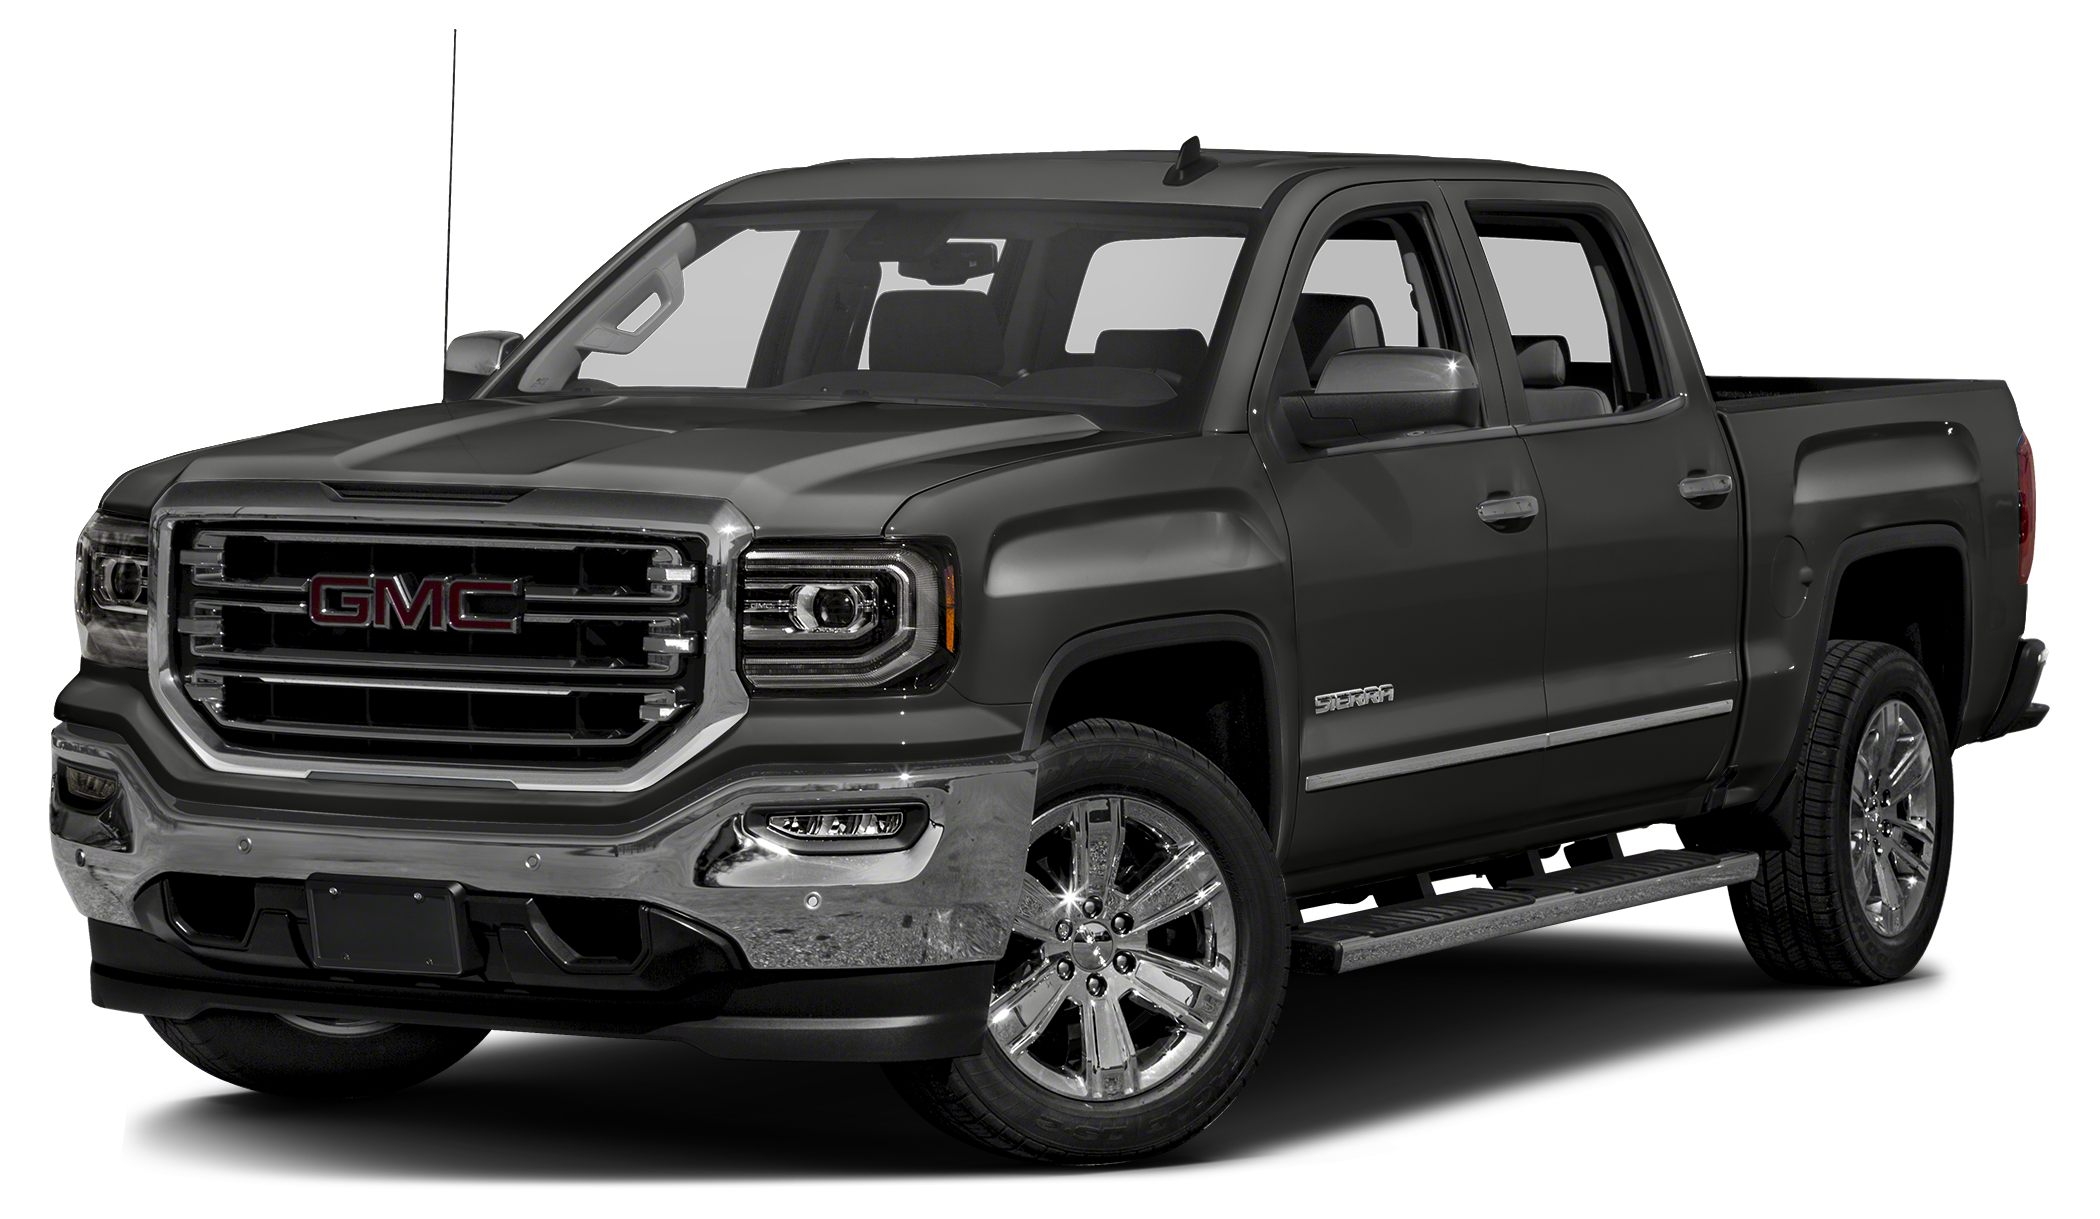 2016 GMC Sierra 1500 SLT OPTION PACKAGES SLT CREW CAB PREMIUM PLUS PACKAGE Includes NZP 2